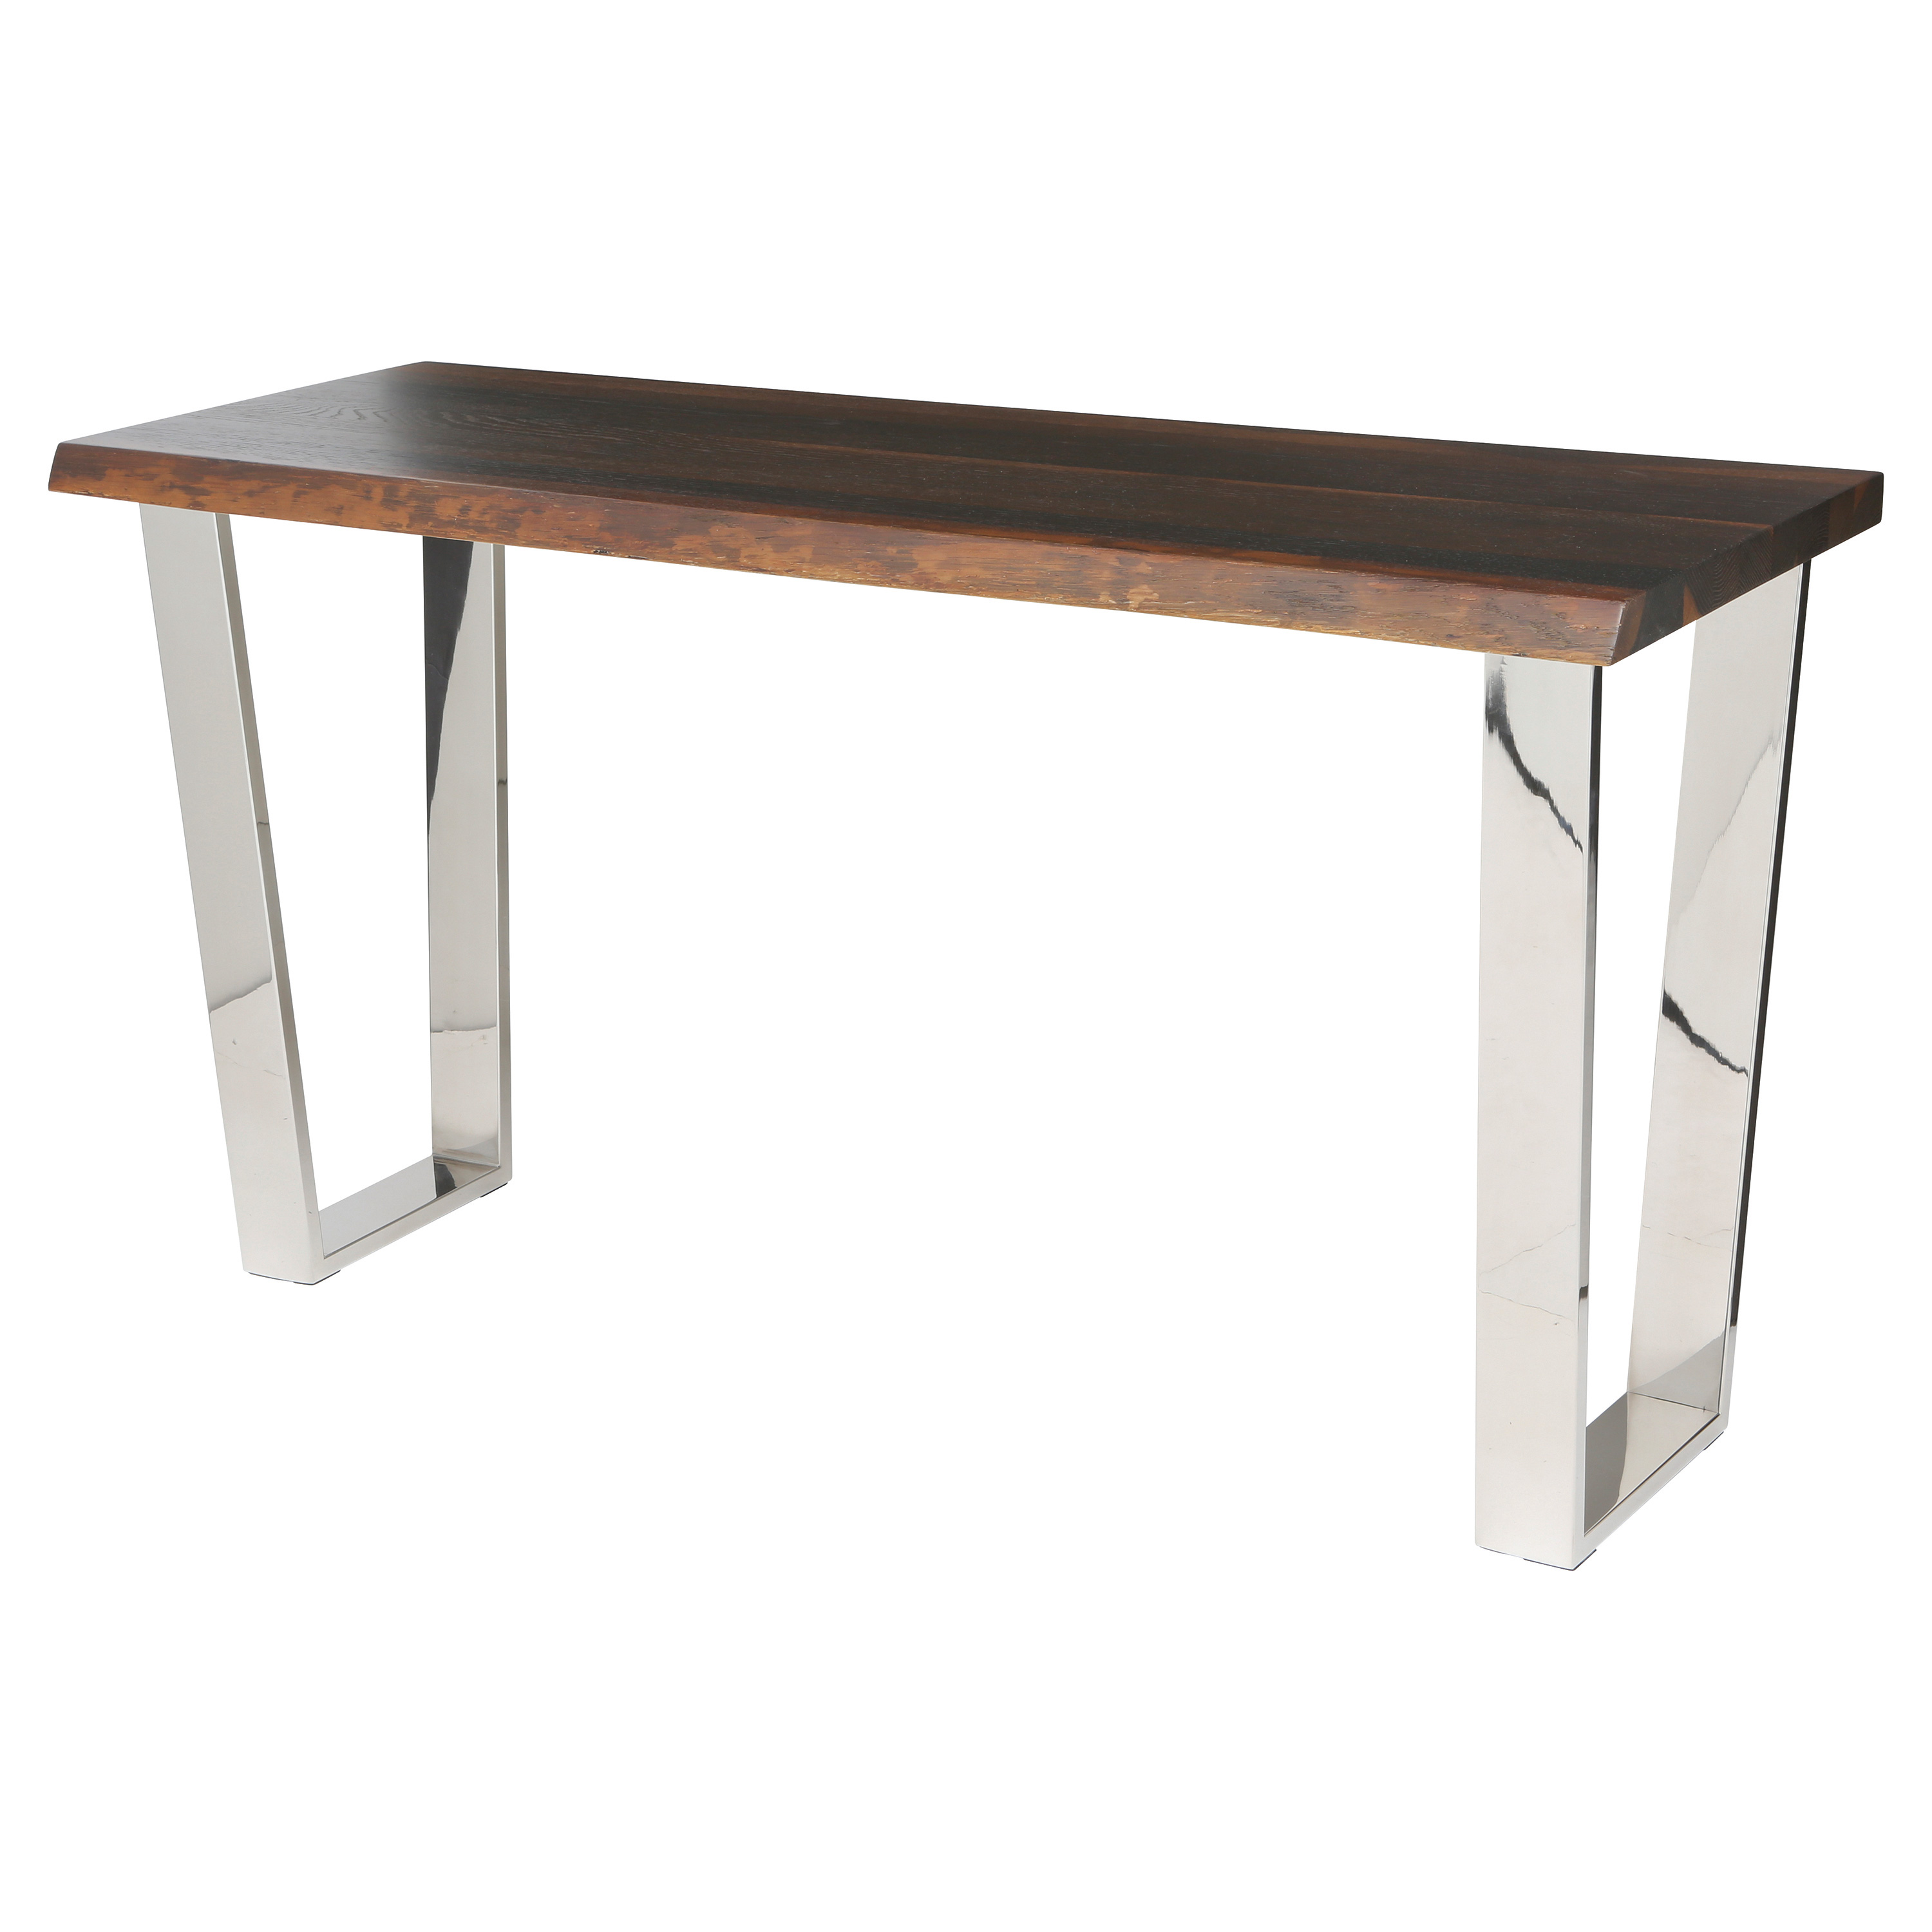 Cogsworth Industrial Brown Oak Stainless Steel Console Table